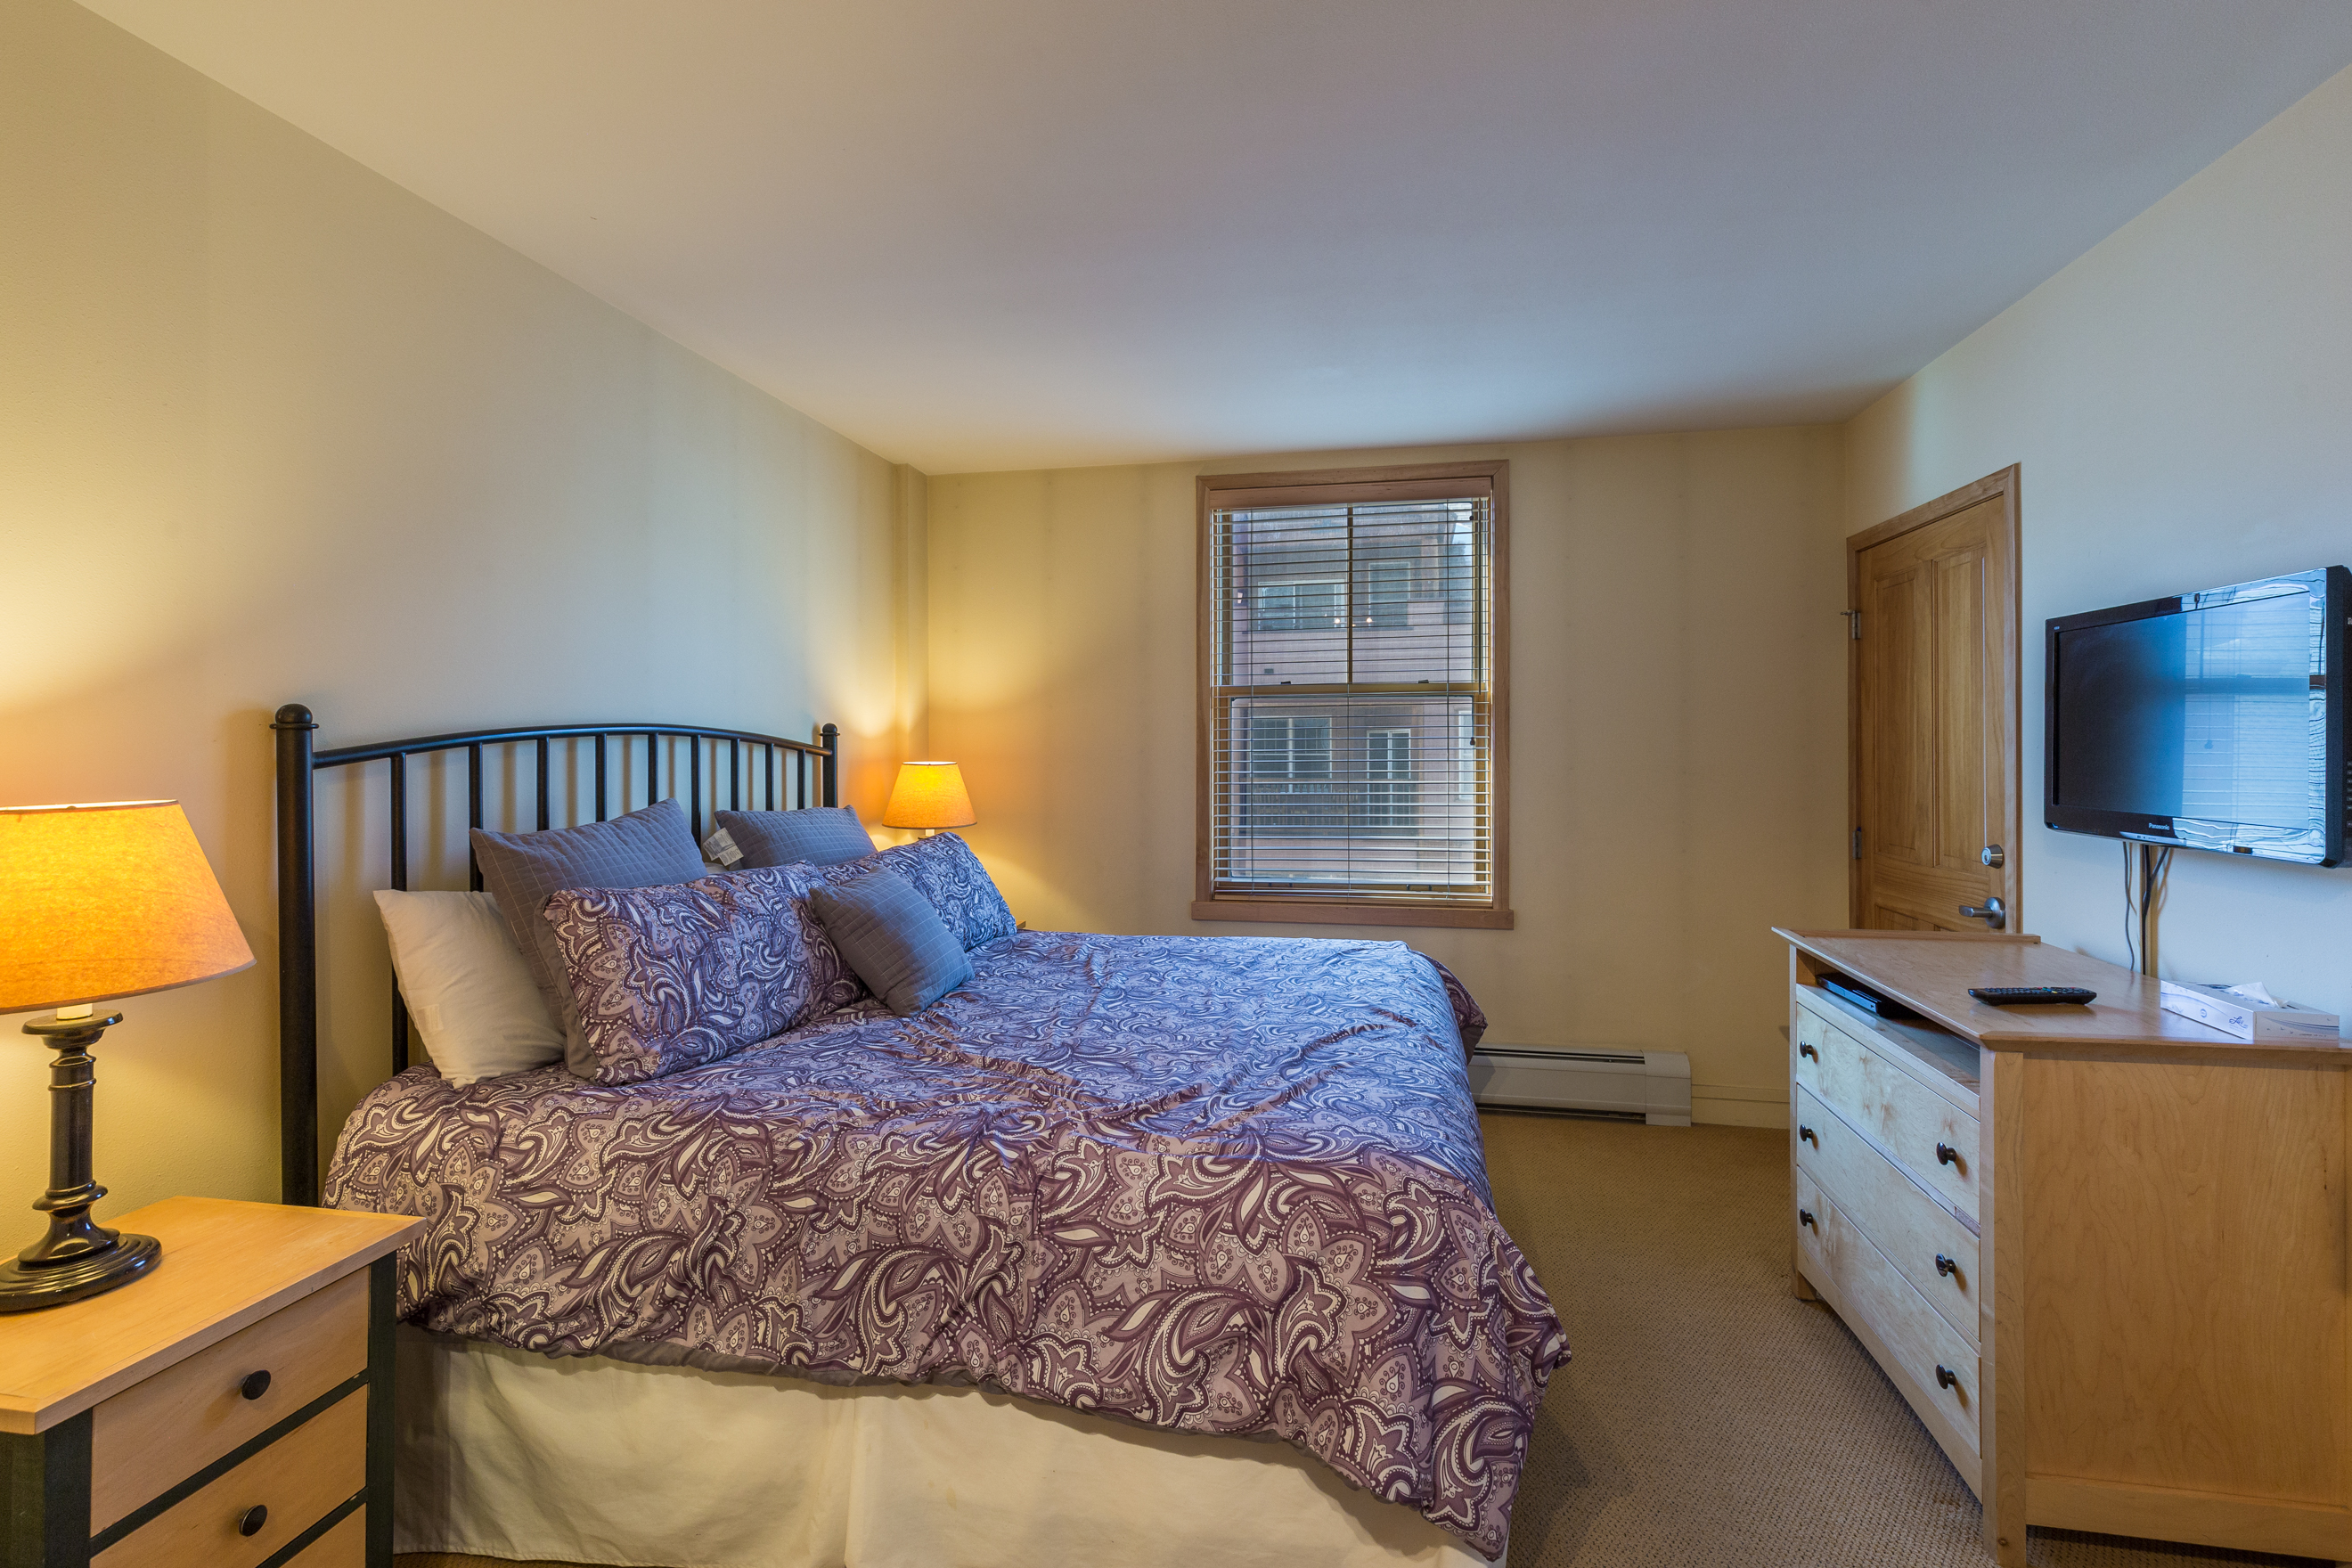 The master bedroom features a king-sized bed, mounted flat screen TV and an en suite bathroom.